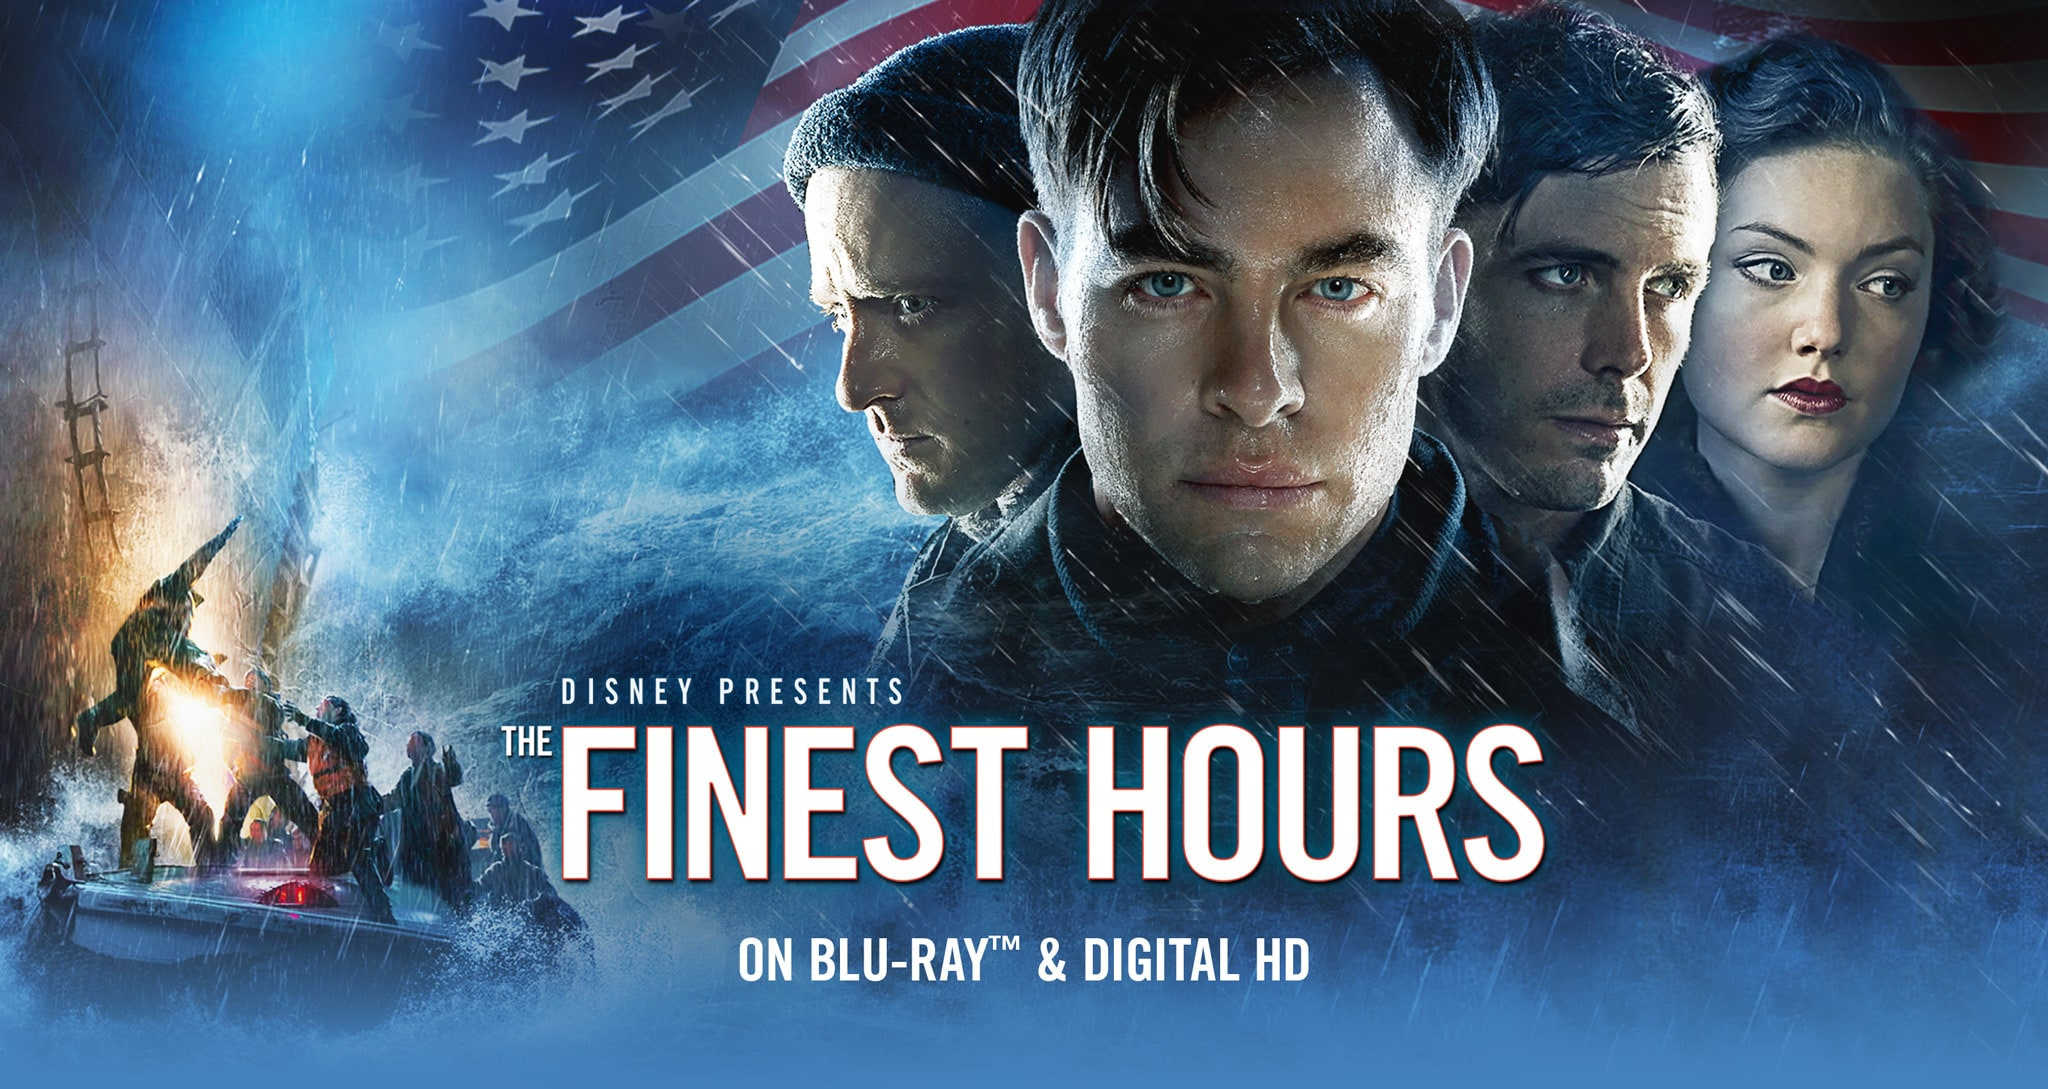 the finest hours full movie free